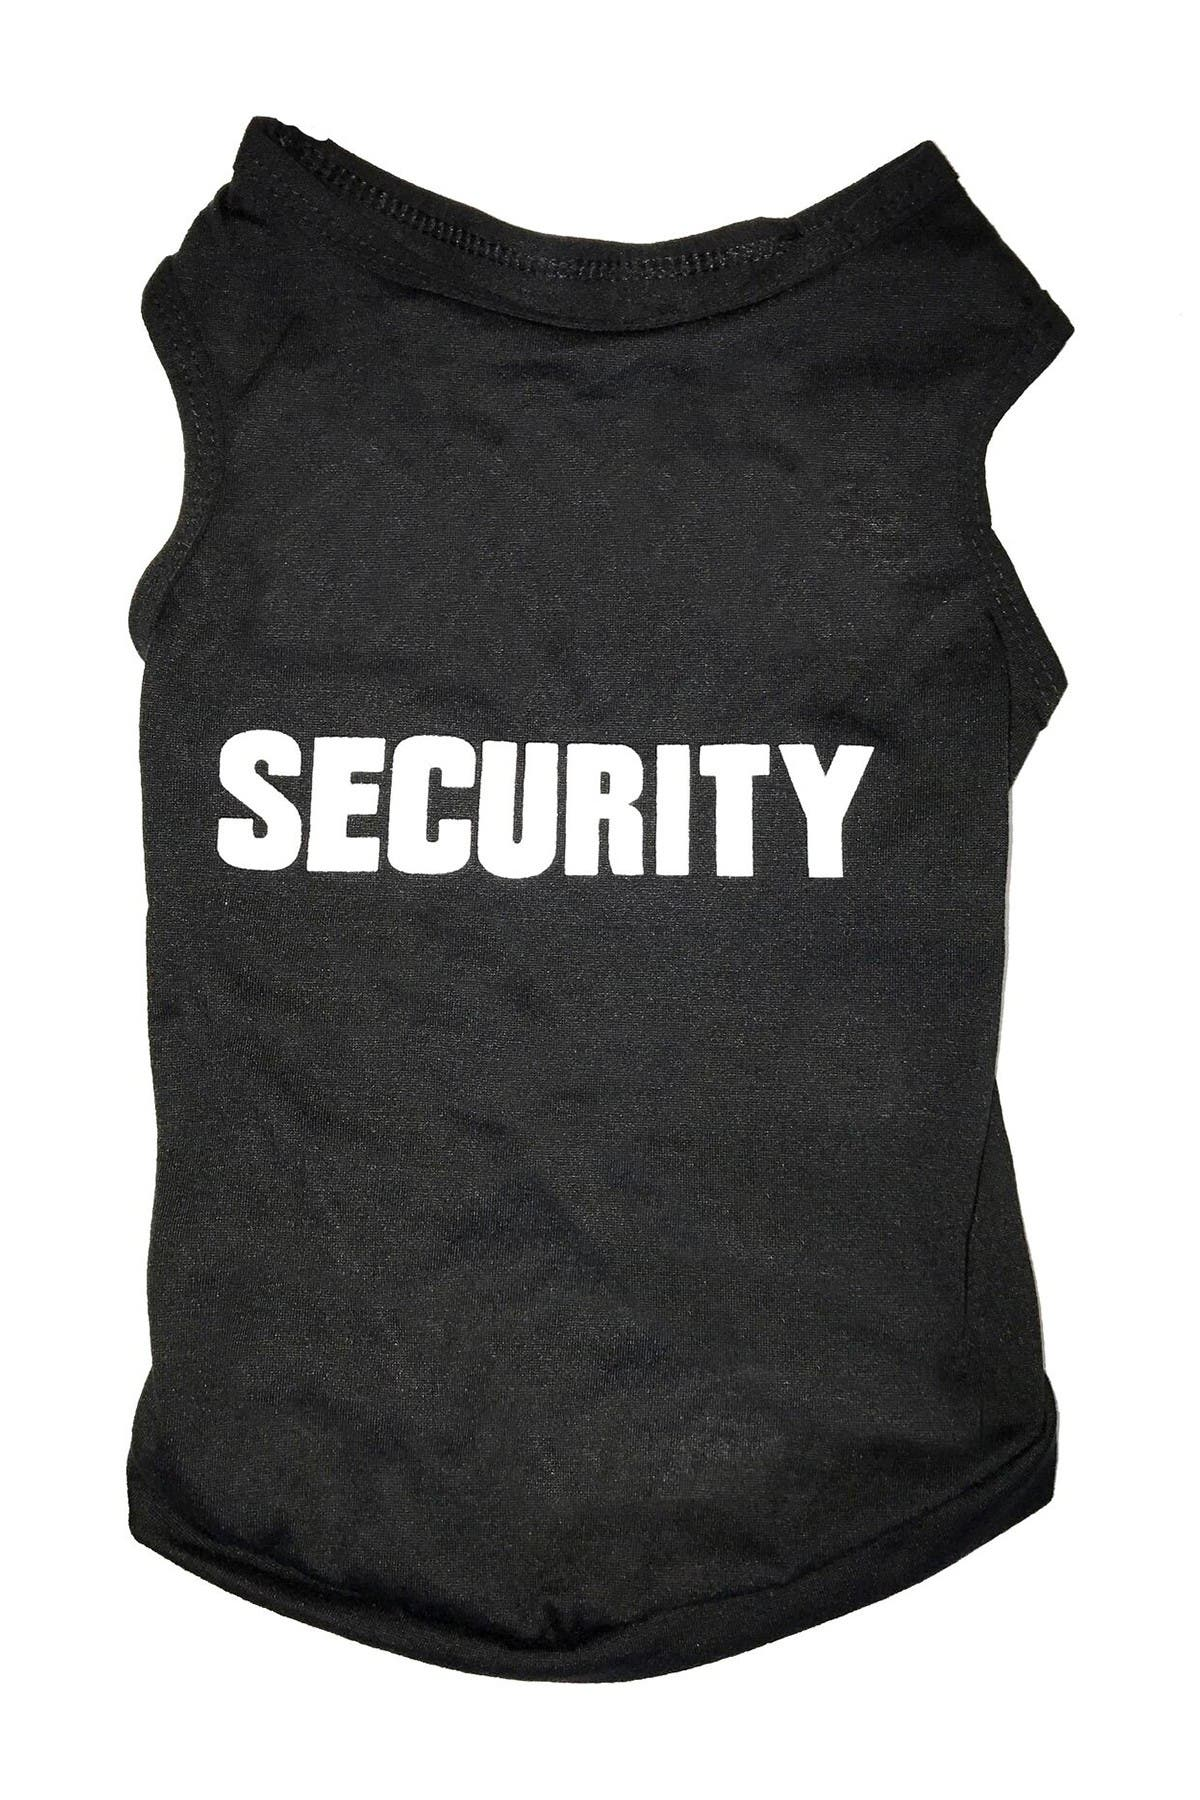 Image of Dogs of Glamour Large Black Security Tee